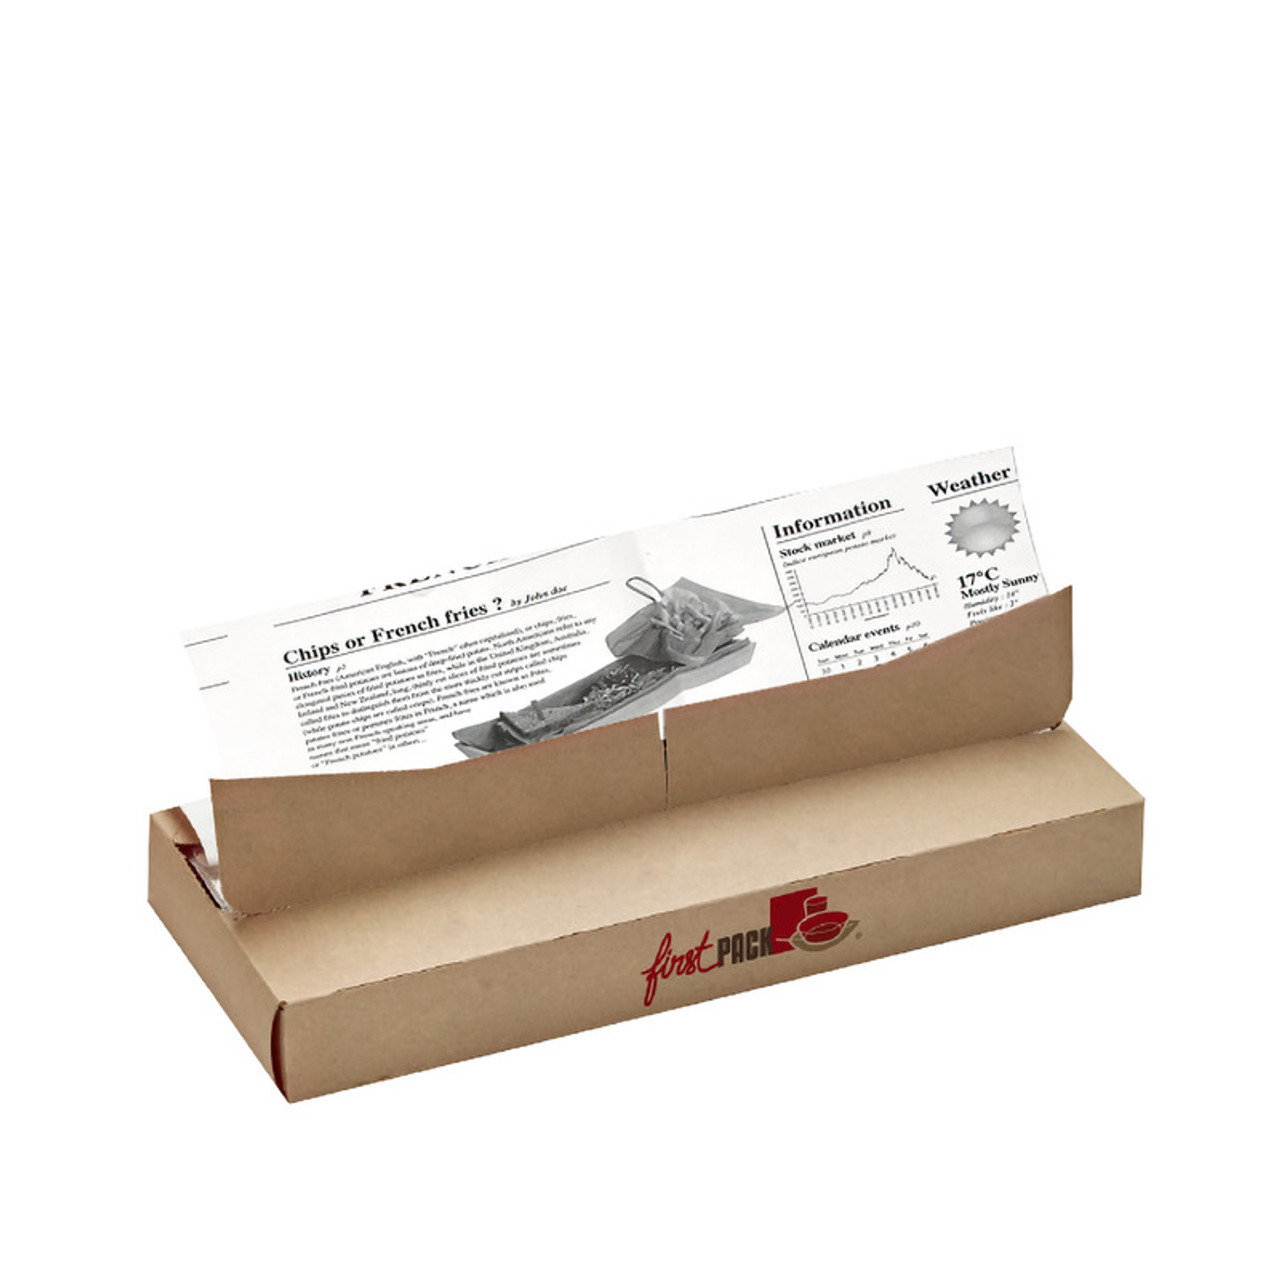 Greaseproof White Paper With Newsprint Design In Dispenser Box - W:10.63in L:17.8in